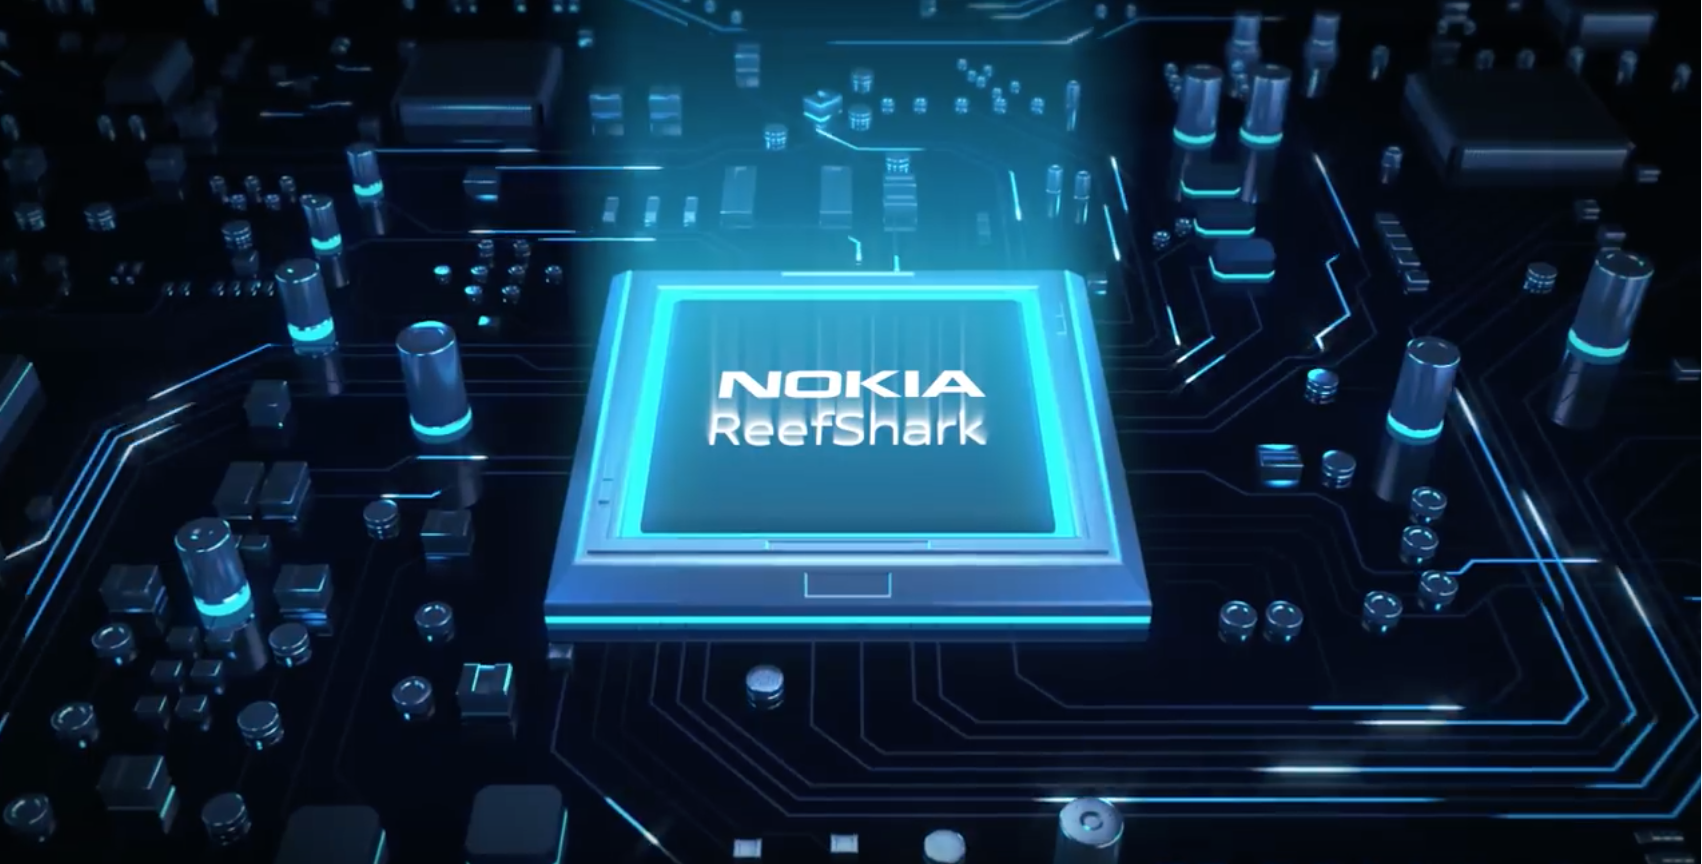 Nokia launches ReefShark, promises massive performance in 5G networks